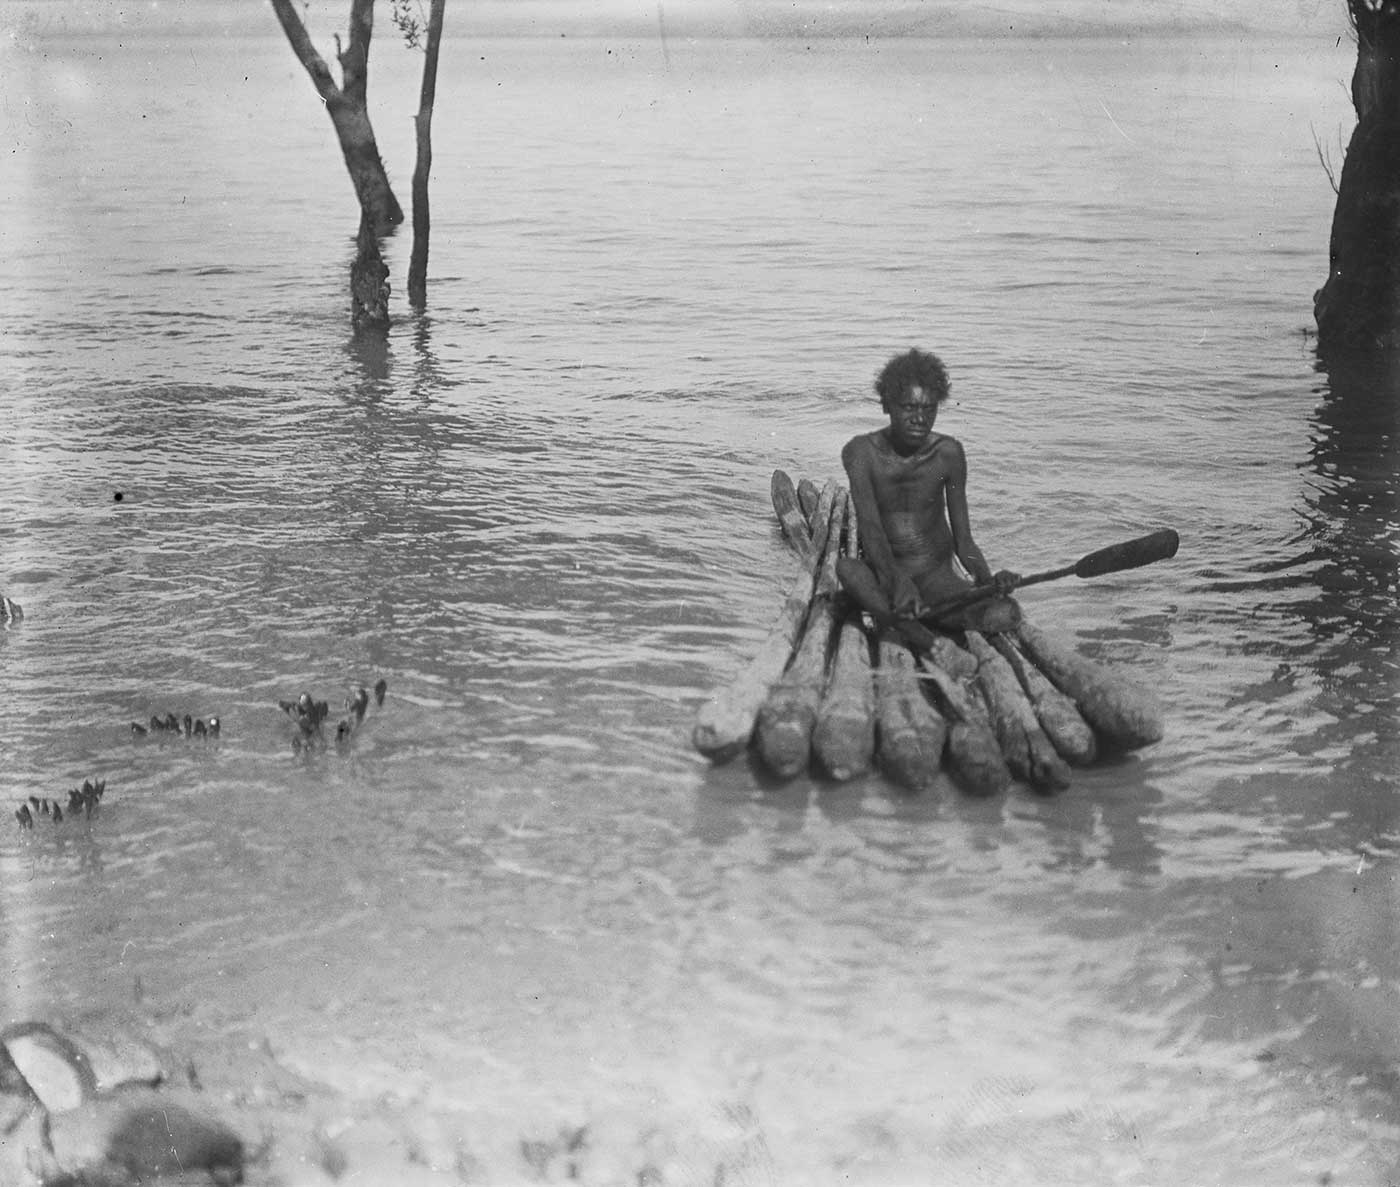 Black and white photograph of a man sitting on a raft on a body of water. - click to view larger image